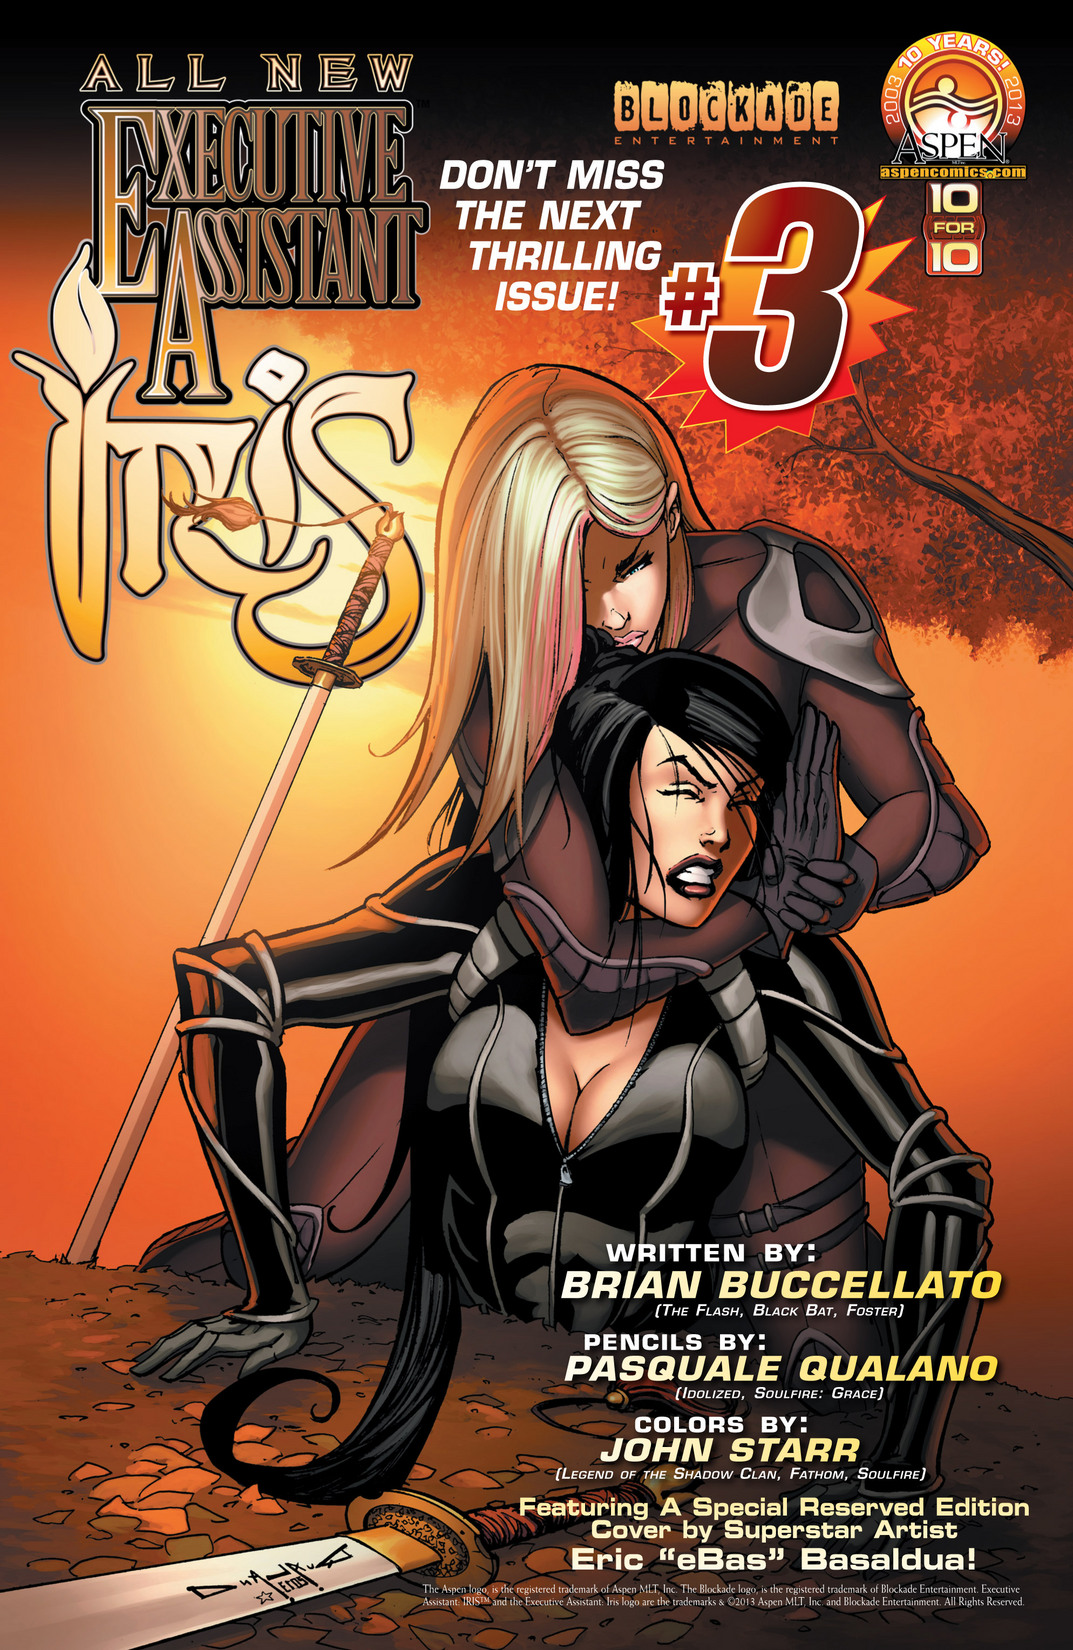 Read online All New Executive Assistant: Iris comic -  Issue #2 - 23